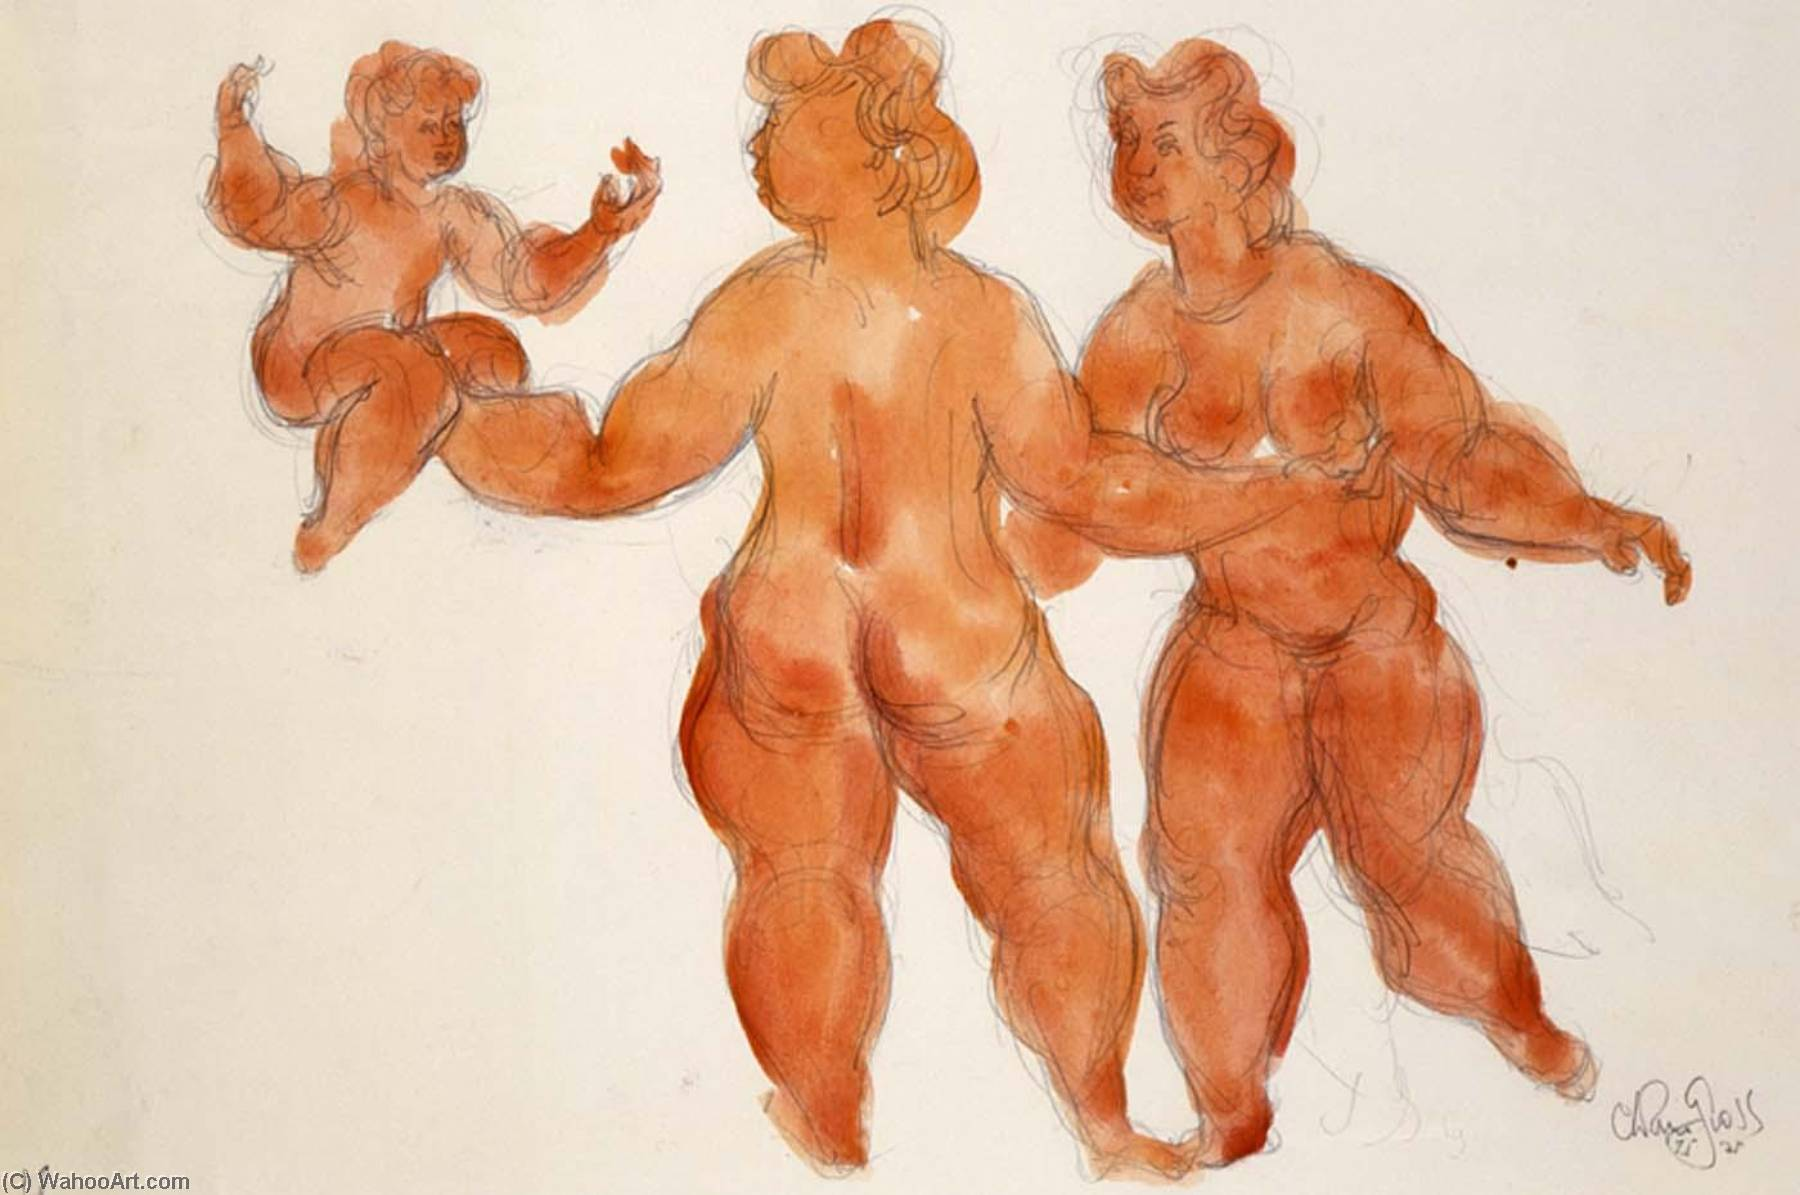 Untitled (3 female nudes), 1975 by Chaim Gross | Famous Paintings Reproductions | WahooArt.com